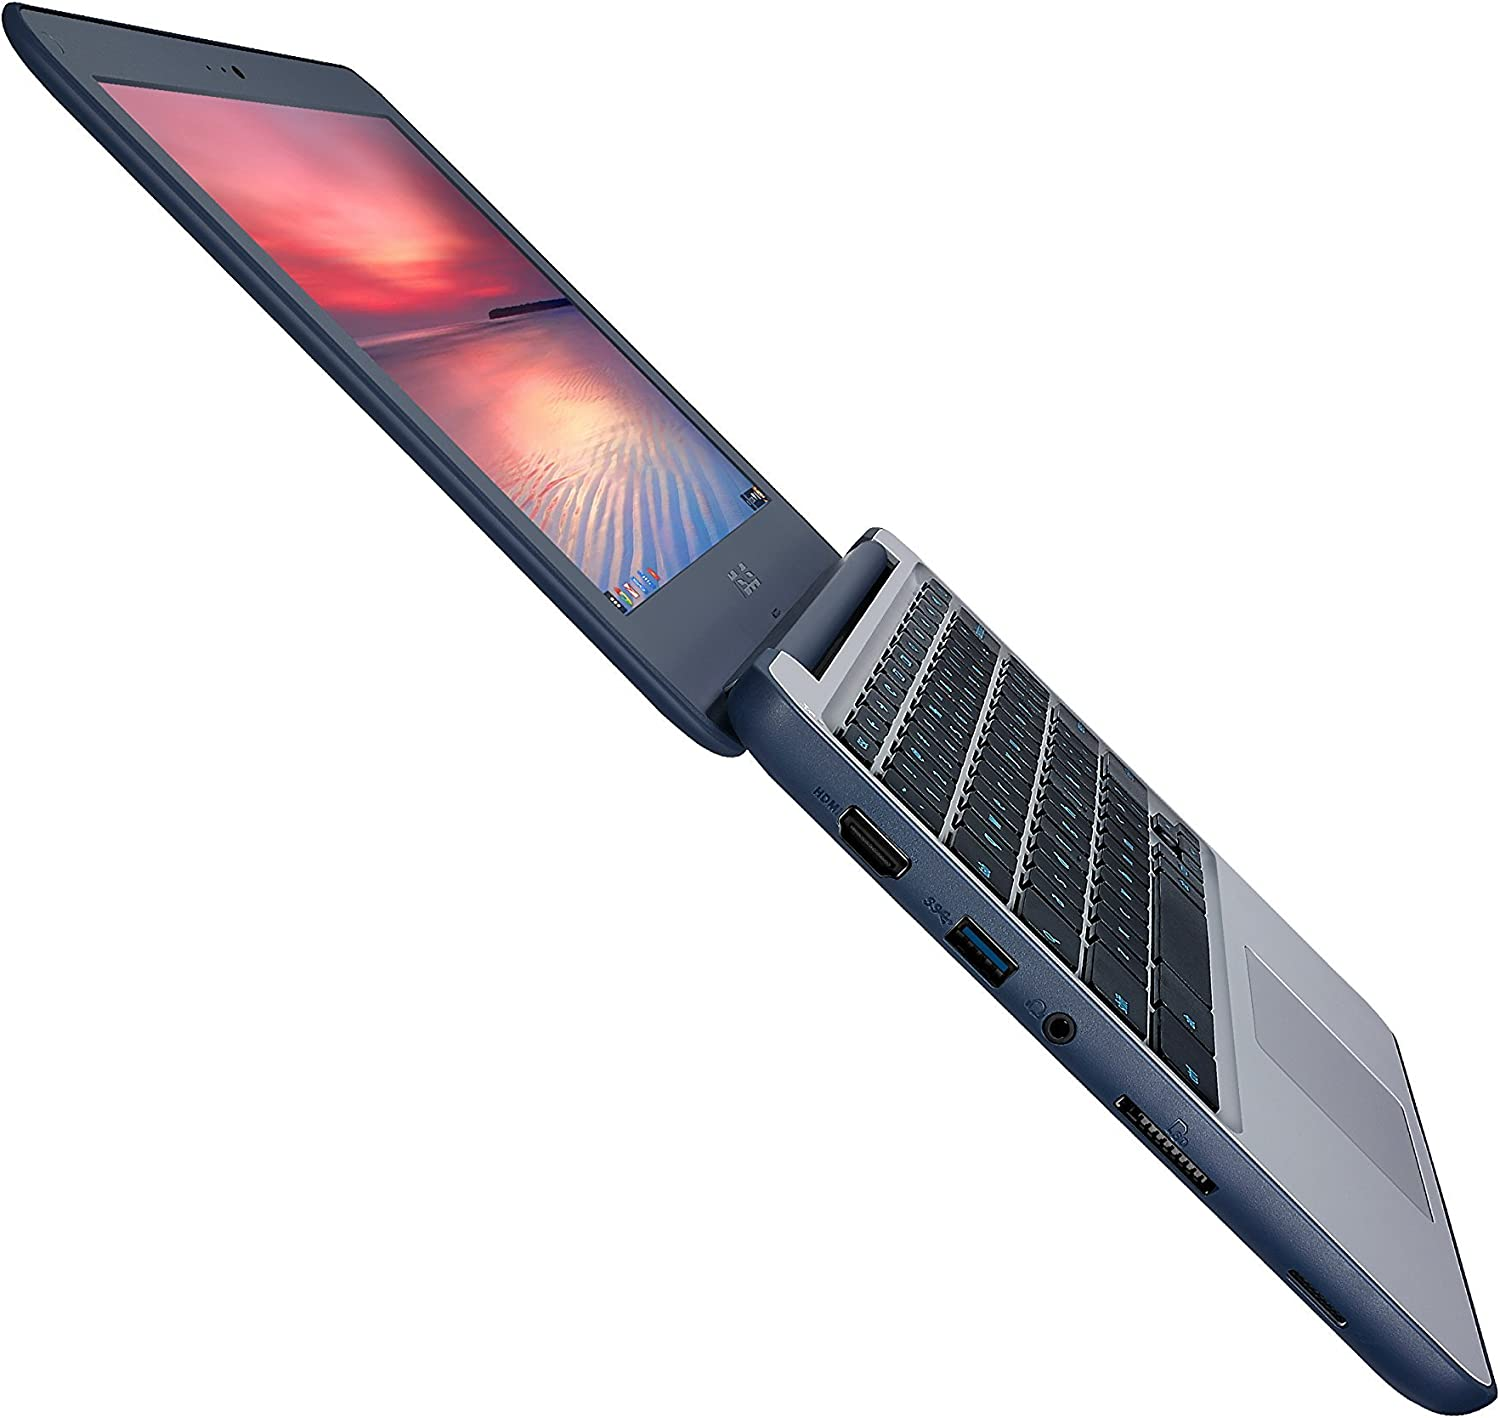 ASUS Chromebook C202SA-YS02 11.6in Ruggedized and Water Resistant Design with 180 Degree (Intel Celeron 4 GB, 16GB eMMC, Dark Blue, Silver) (Renewed)